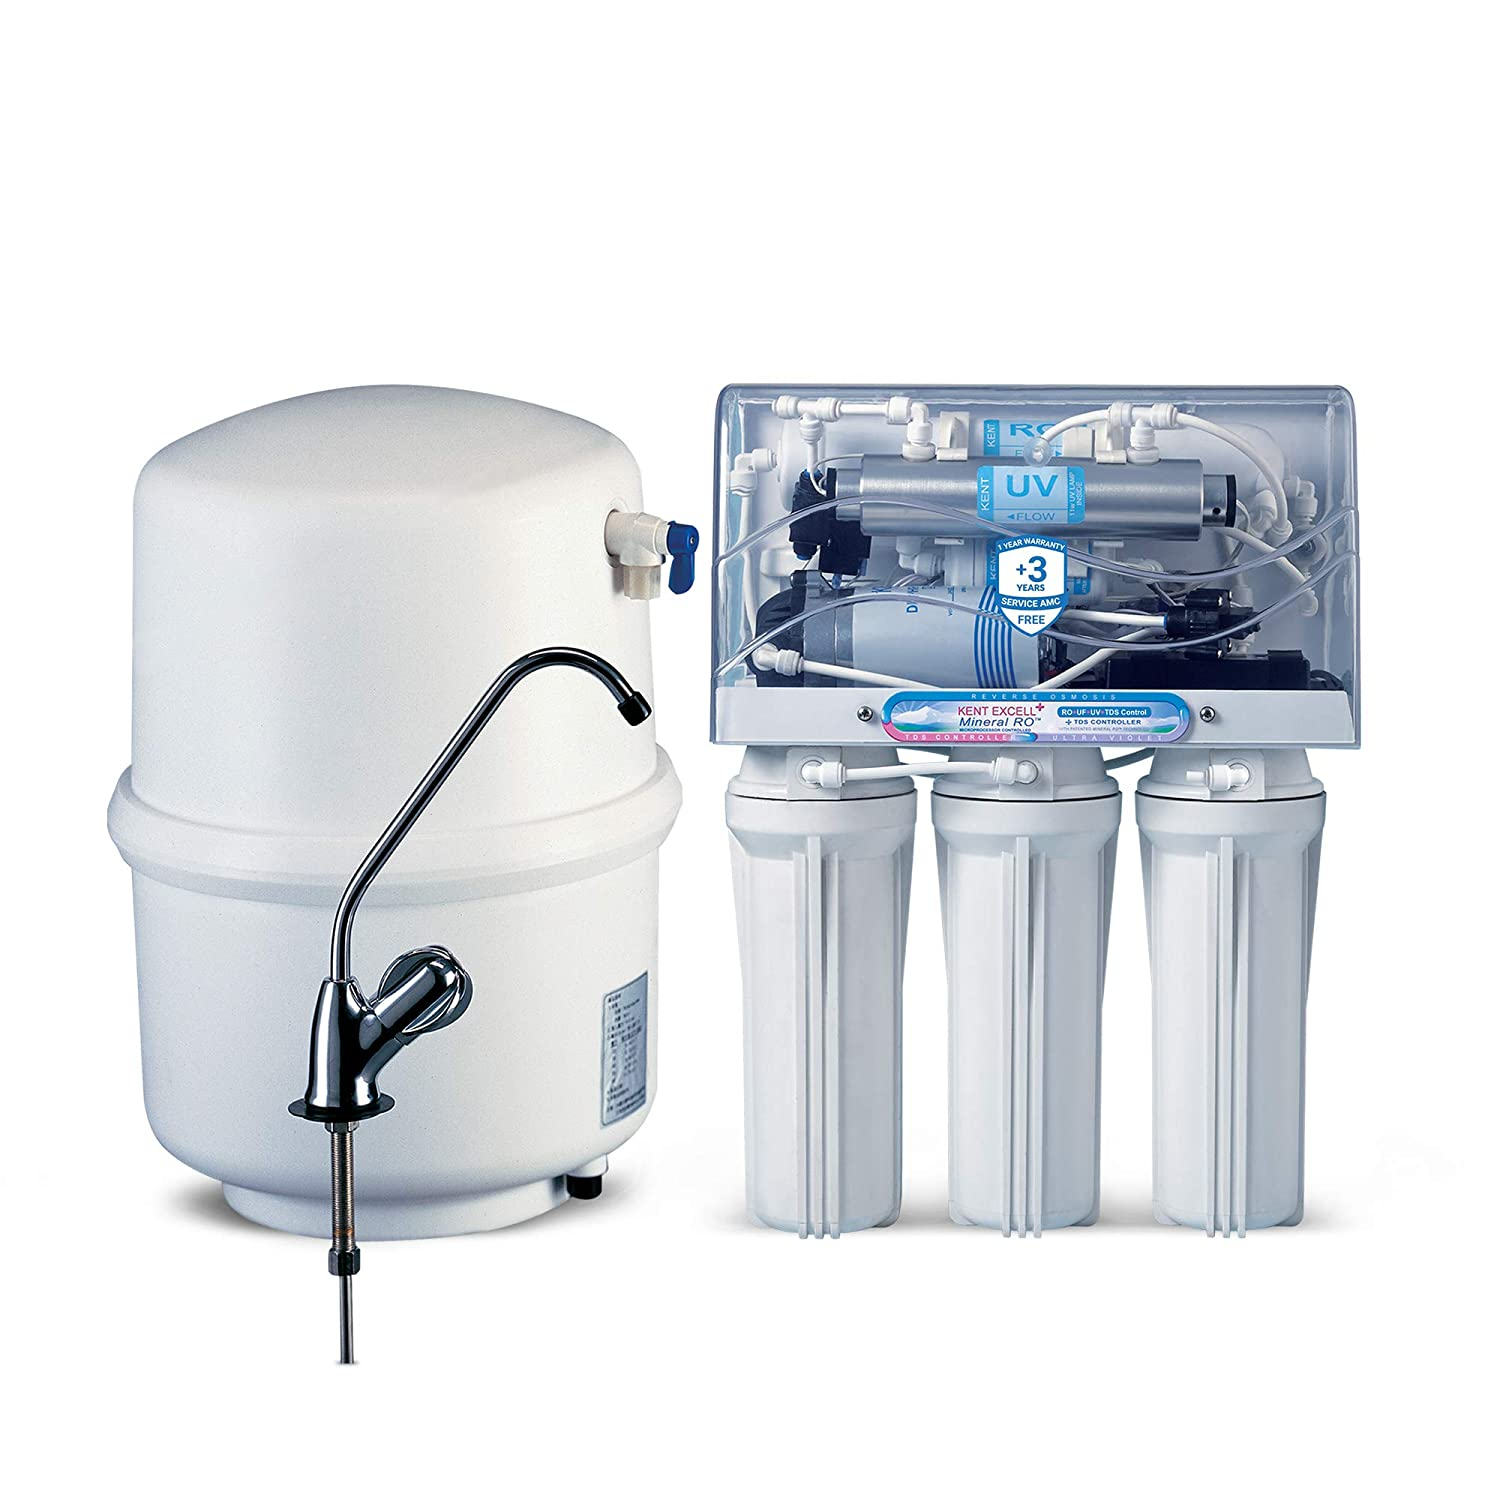 5 Best Water Purifiers below ₹30000 in India 2019 -  Price, Selection Guide & Reviews 4